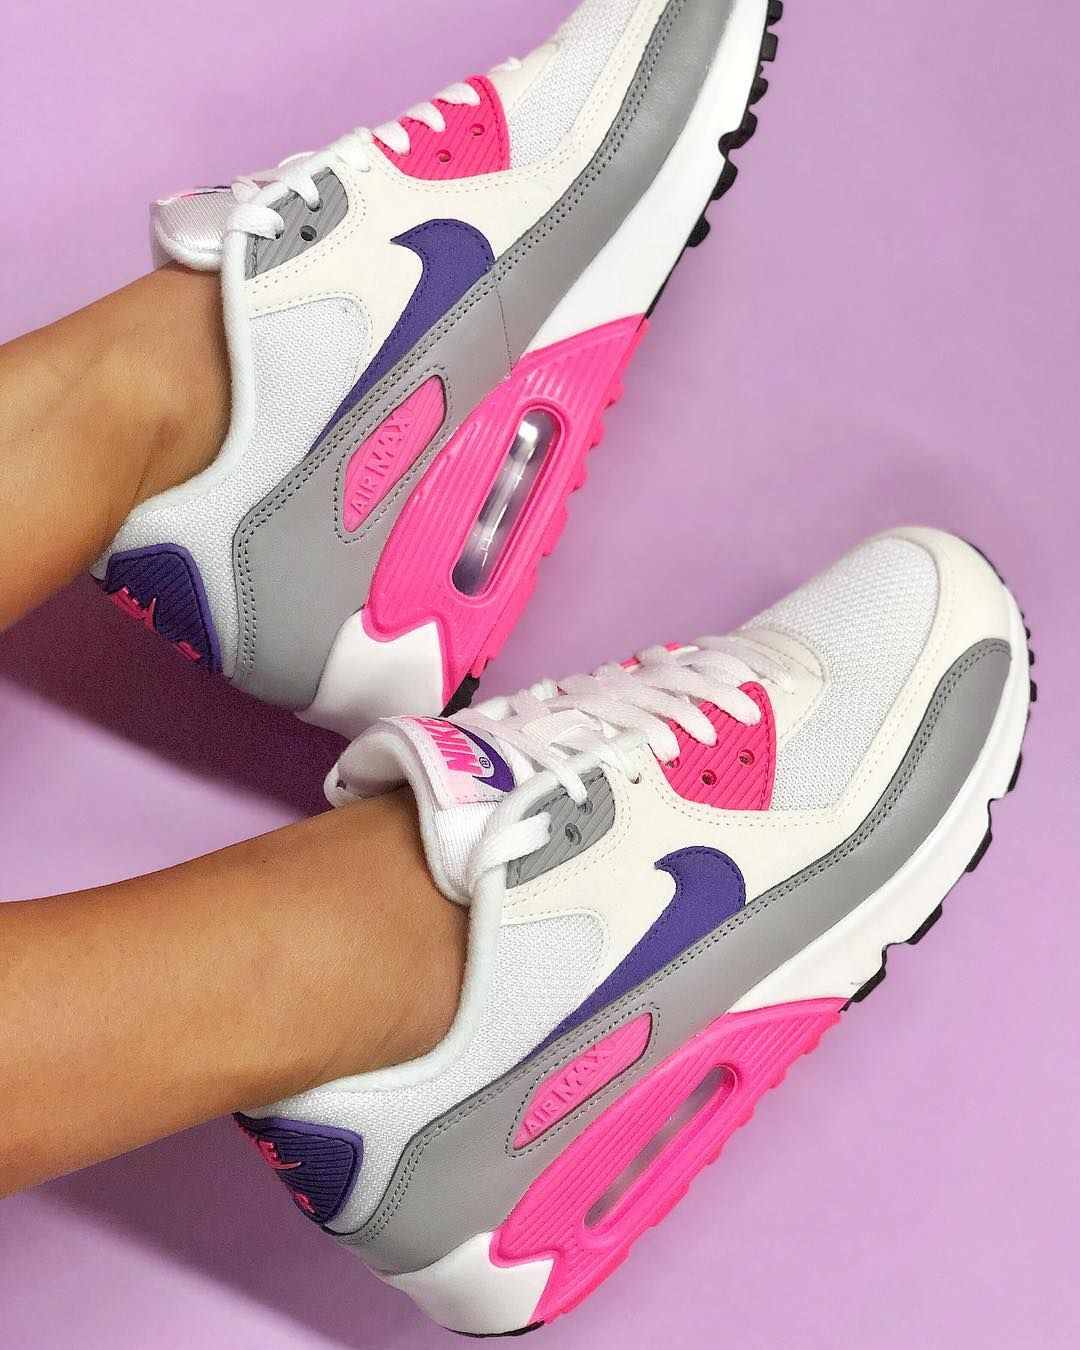 Classic New Nike Air Max 90 Running Shoes For Womens Pink